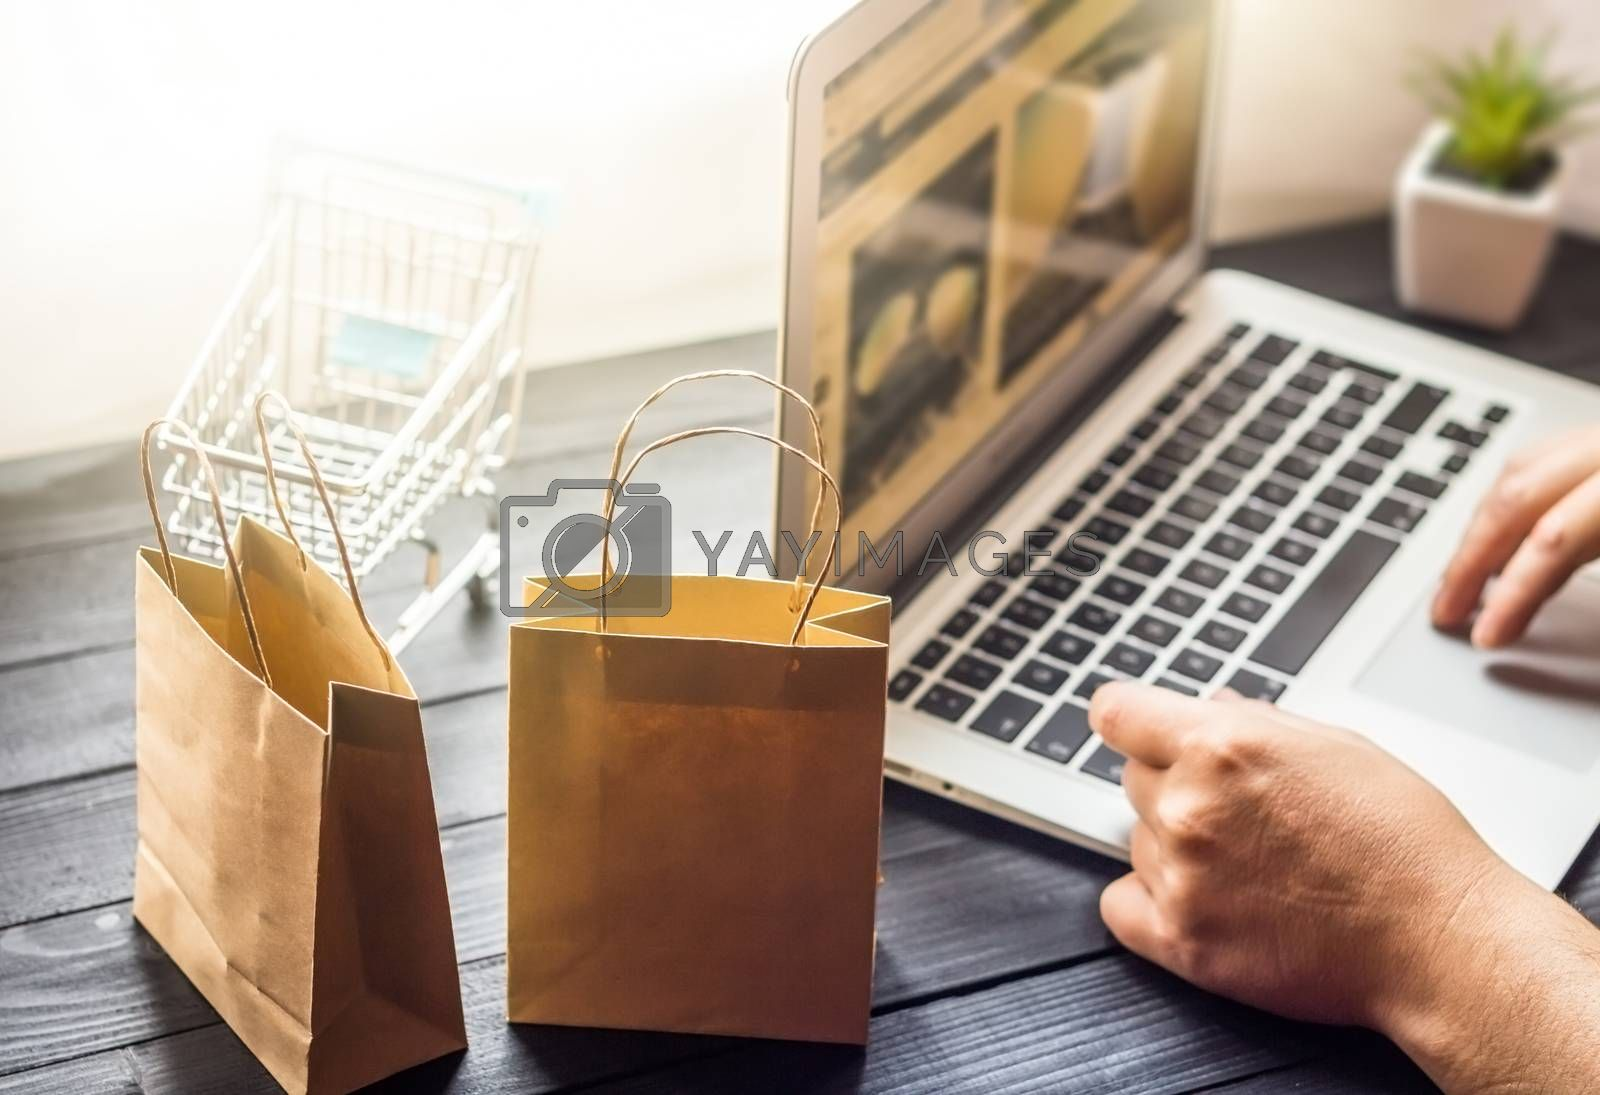 Vienna Austria June.16 2018, Online shopping concept, young men using laptop and holding credit card , selective focus on shopping bags